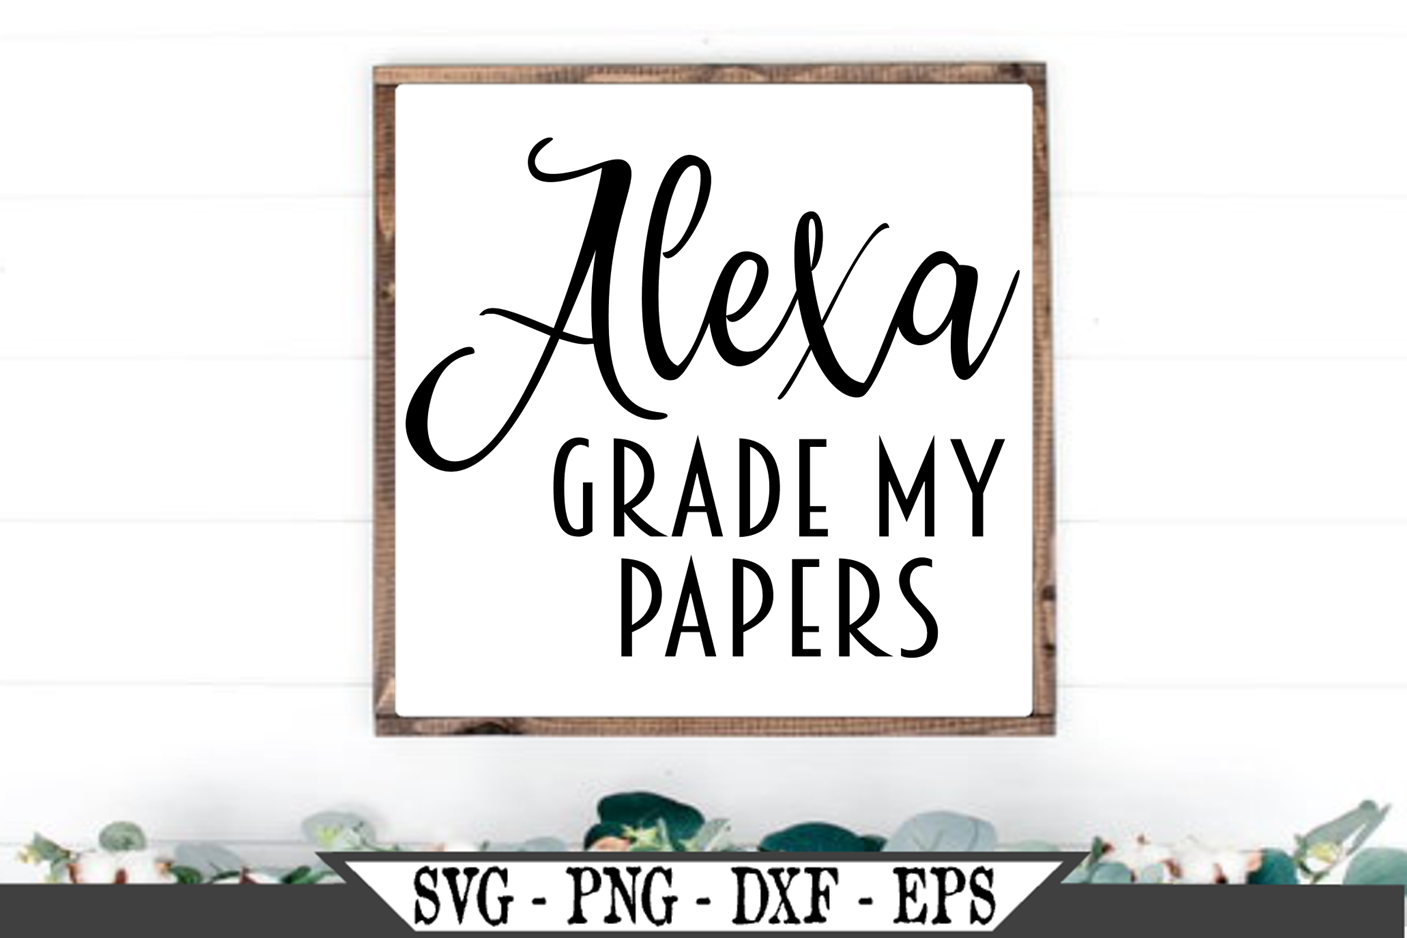 Alexa Grade My Papers SVG example image 1